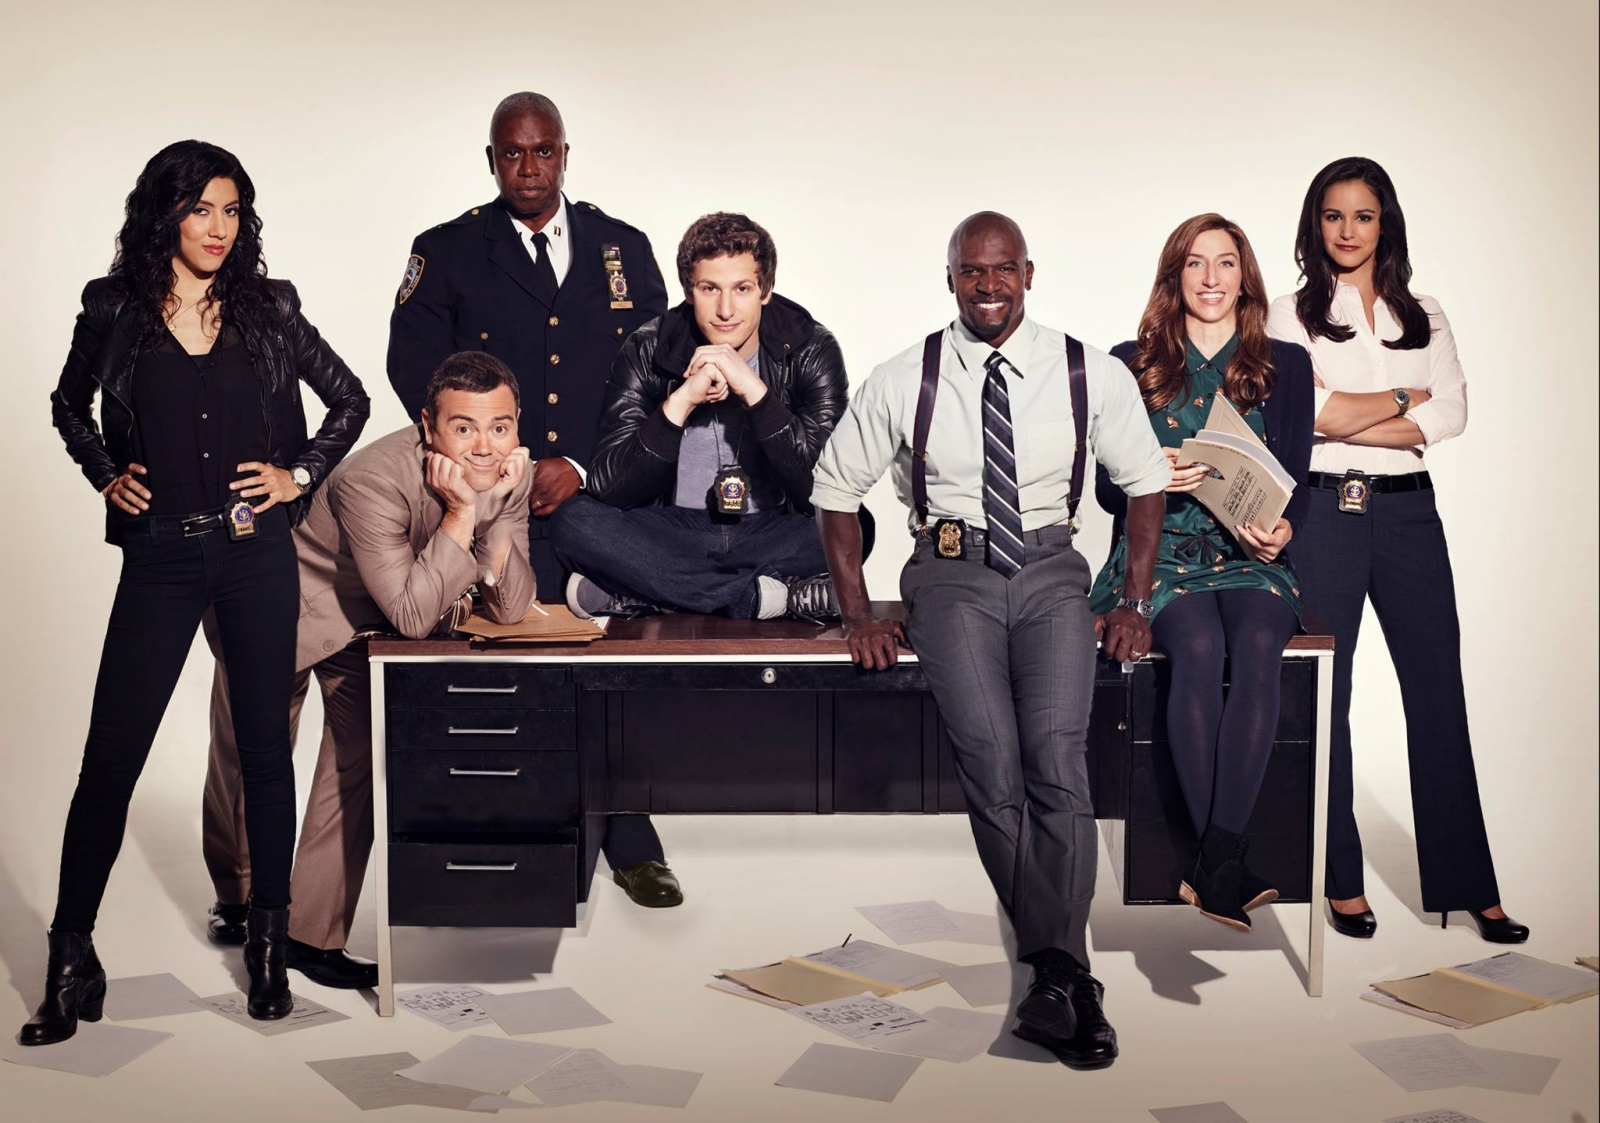 Brooklyn Nine-Nine Season 2 premiere: Where to Watch Episode 1 'Undercover' Online